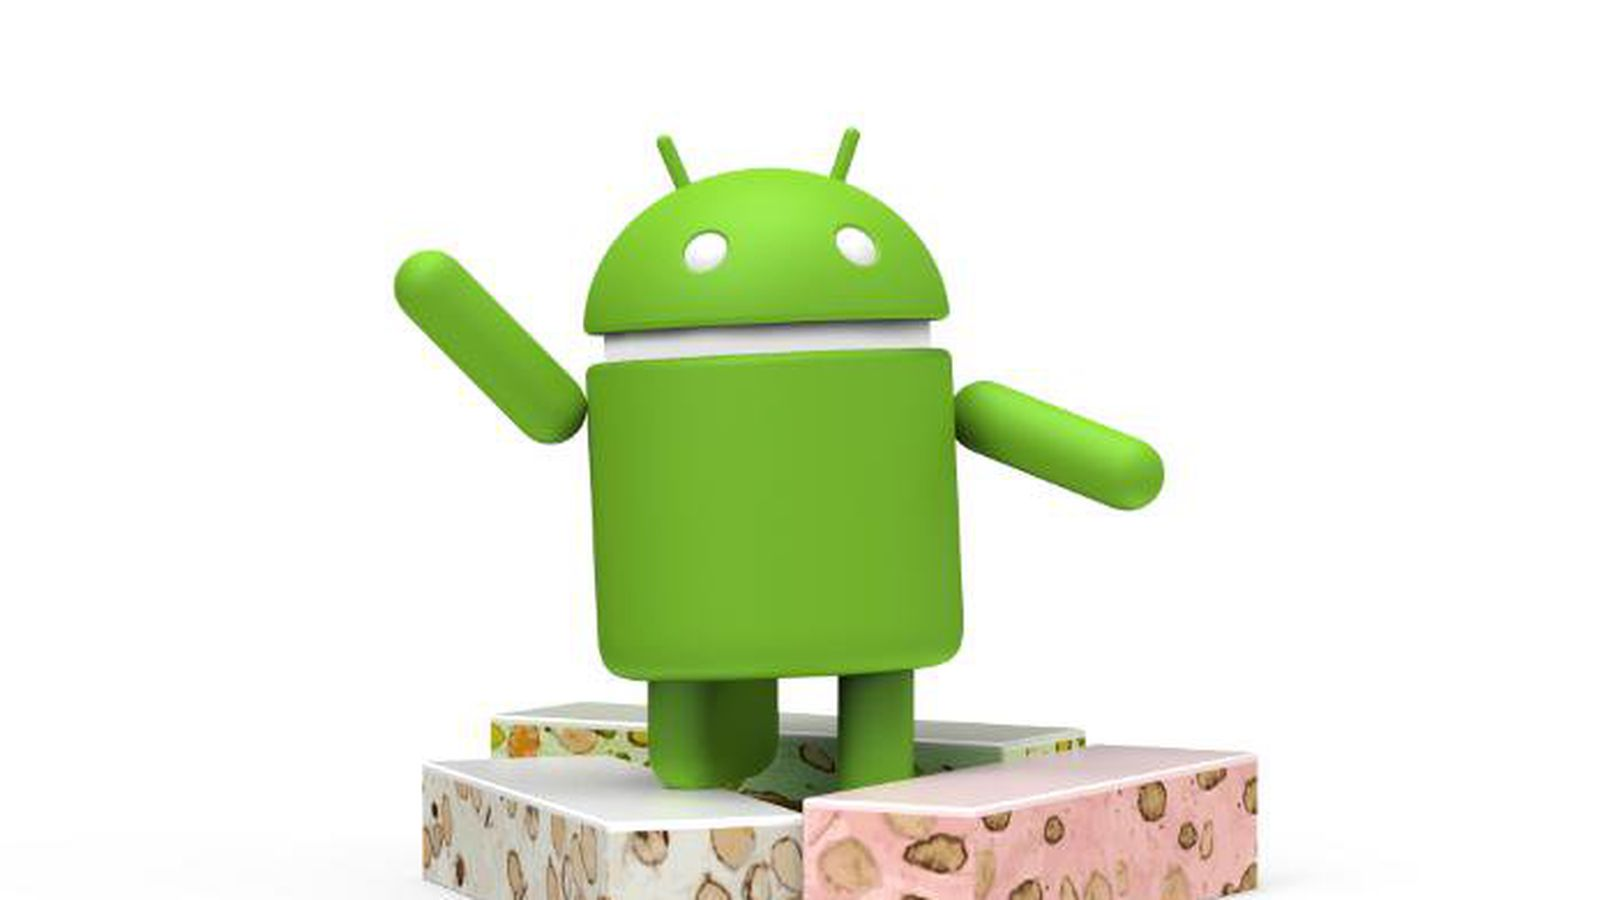 Google decides on Nougat as the tastiest name for the next version of Android